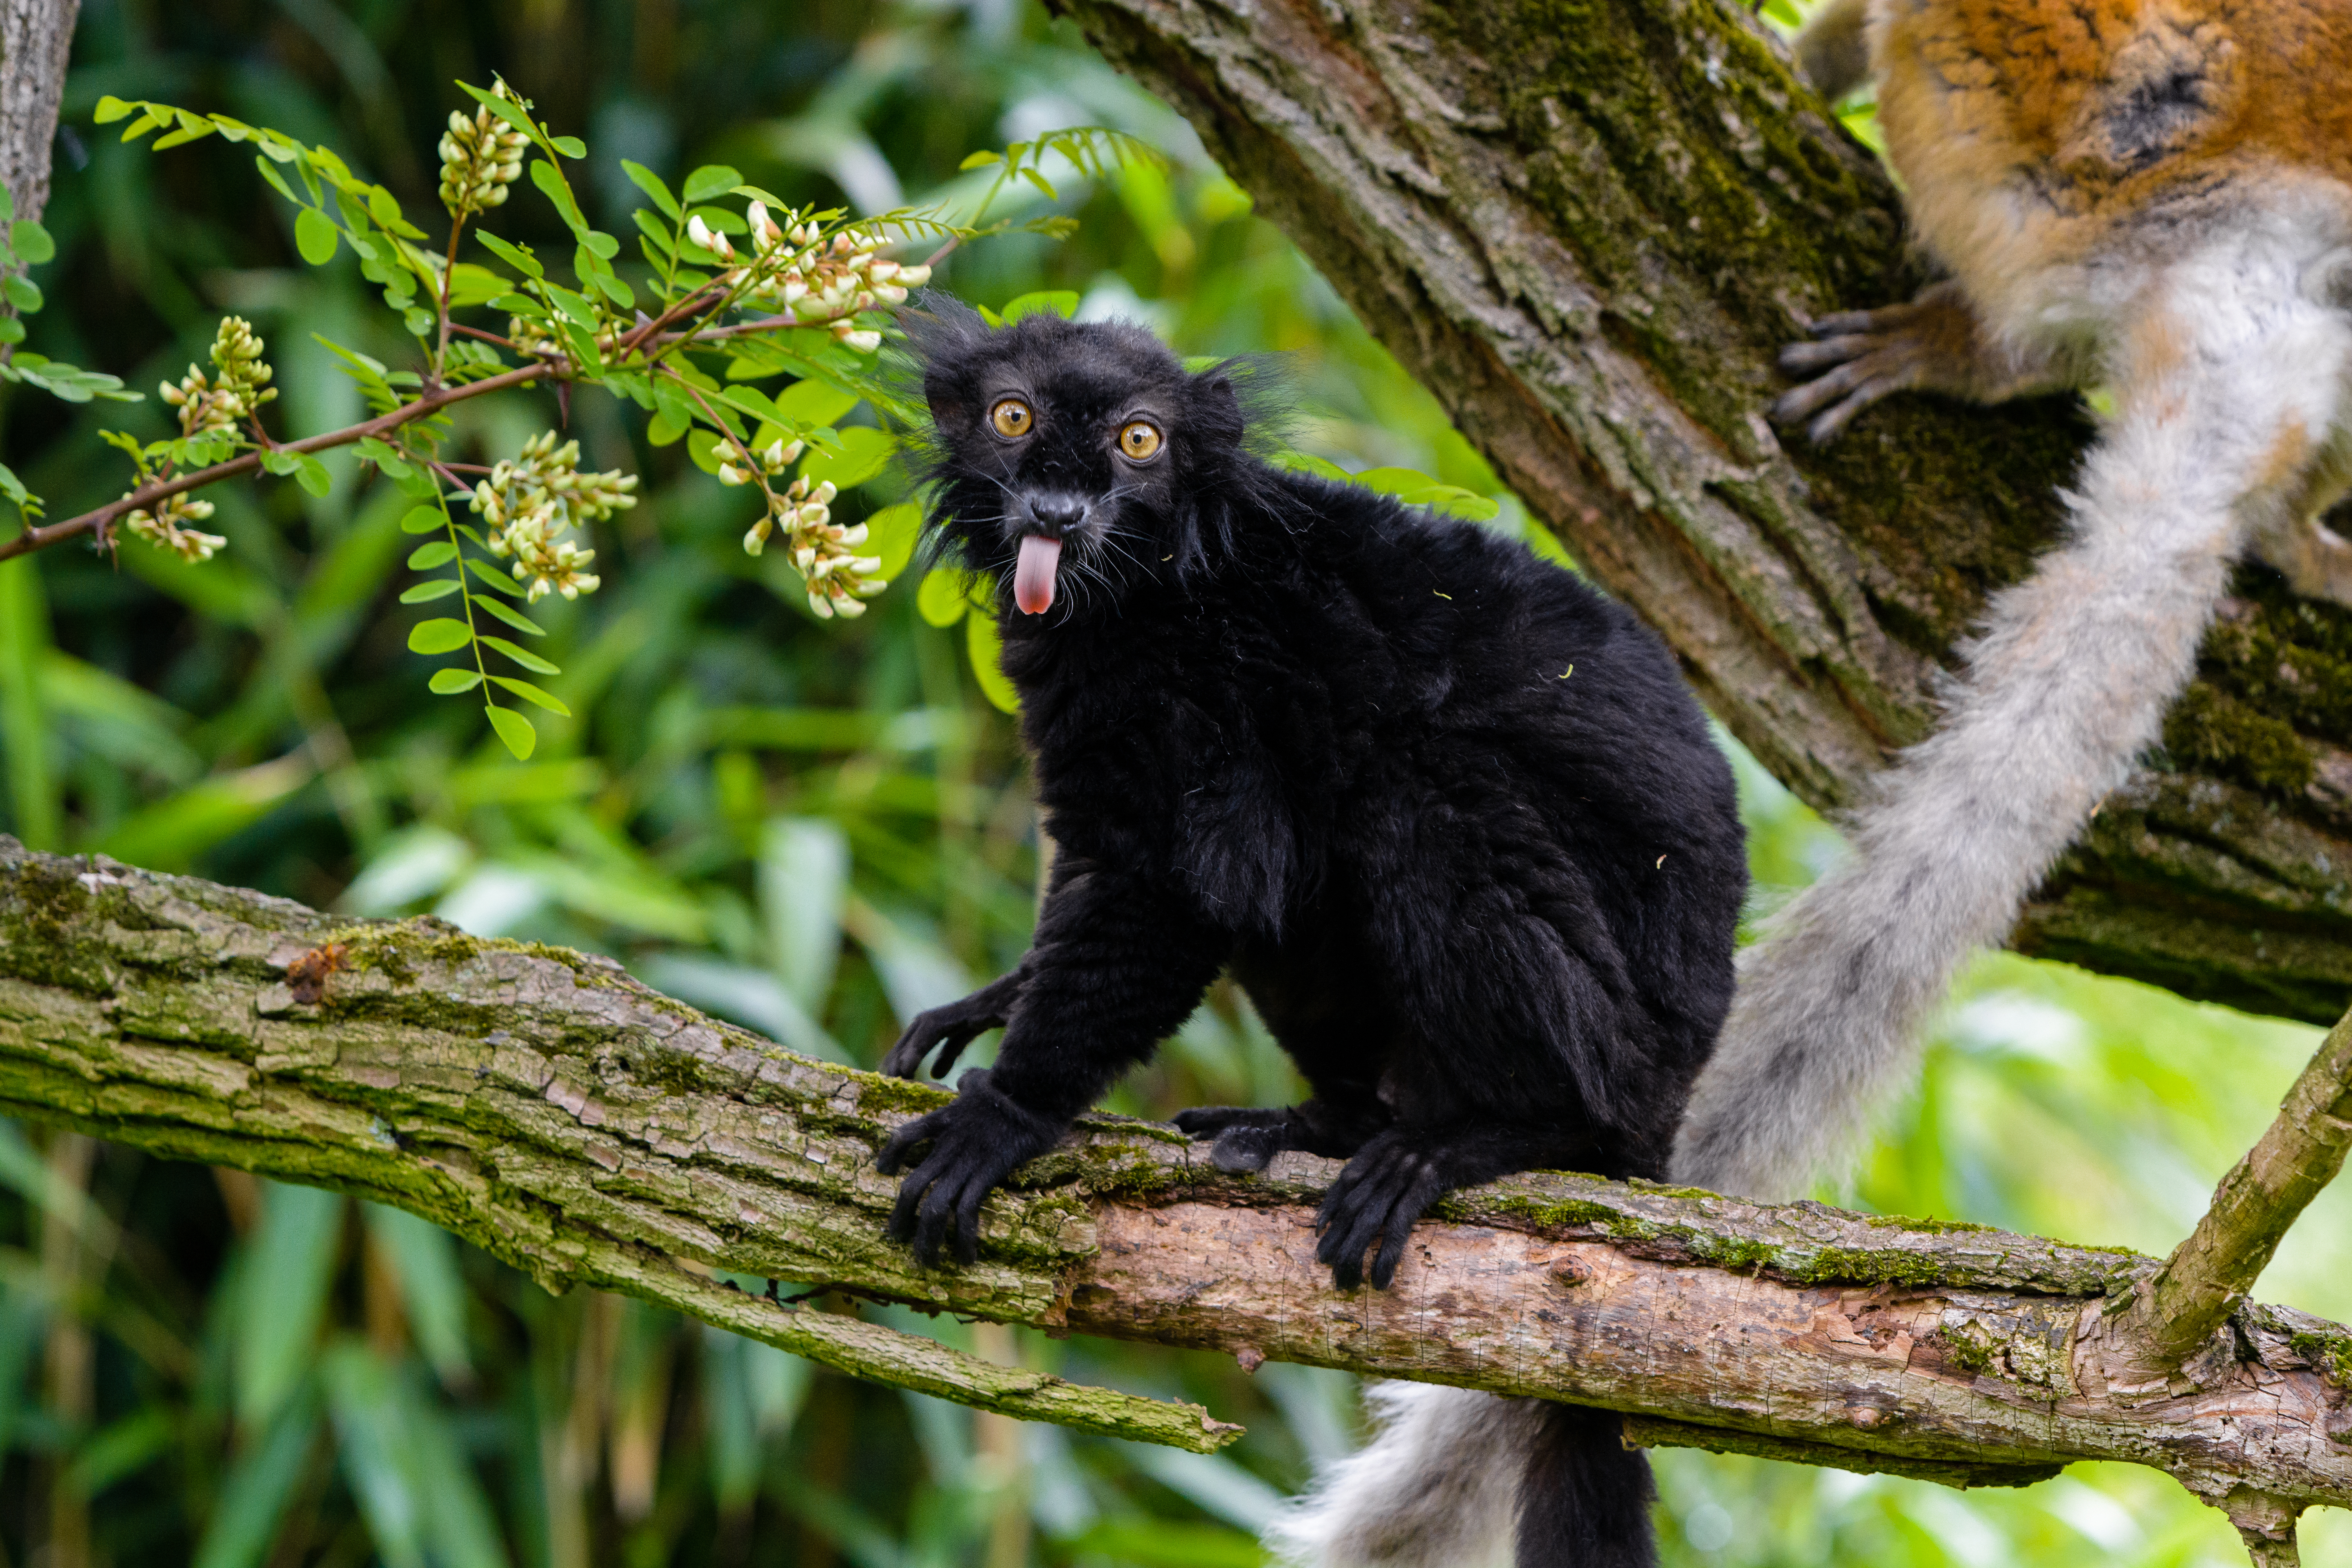 116430 download wallpaper Animals, Lemur, Protruding Tongue, Tongue Stuck Out, Funny, Wildlife screensavers and pictures for free